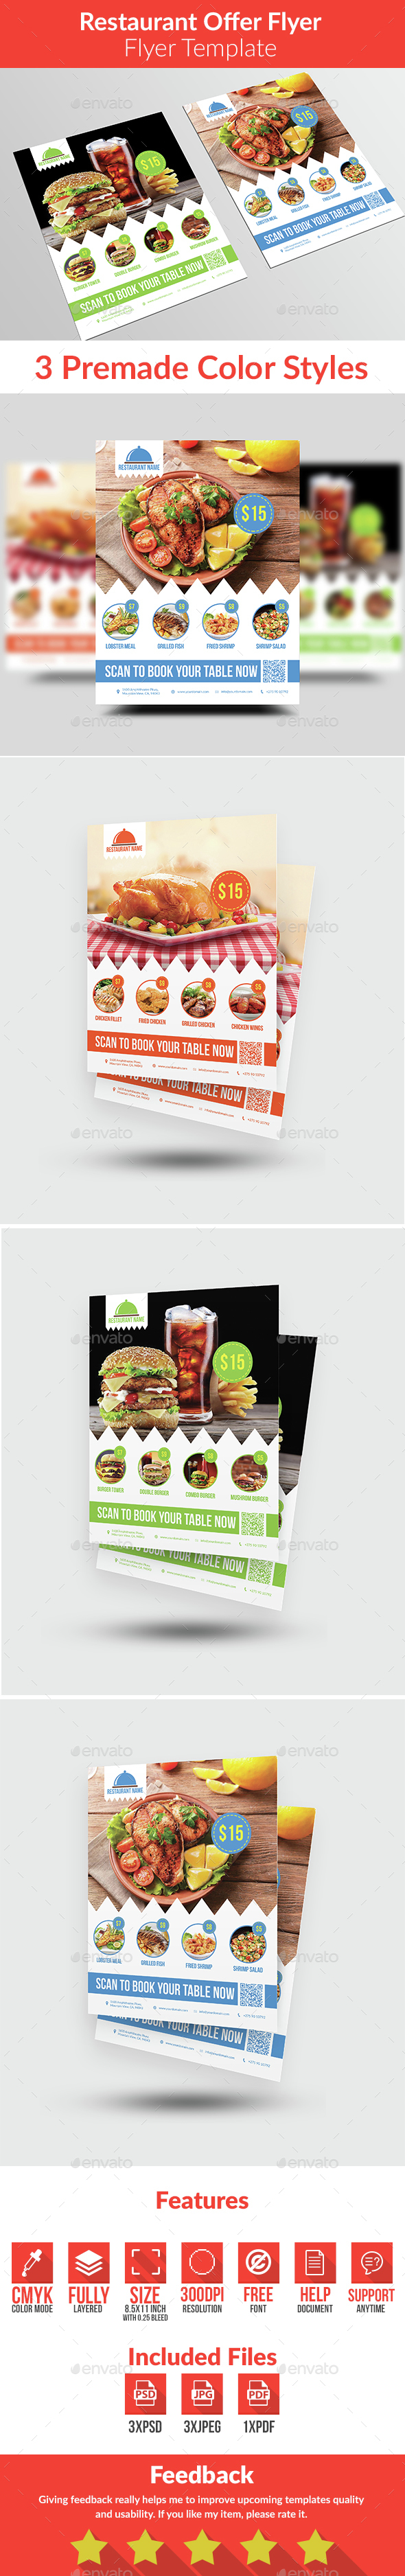 Restaurant Offer Flyer - Restaurant Flyers